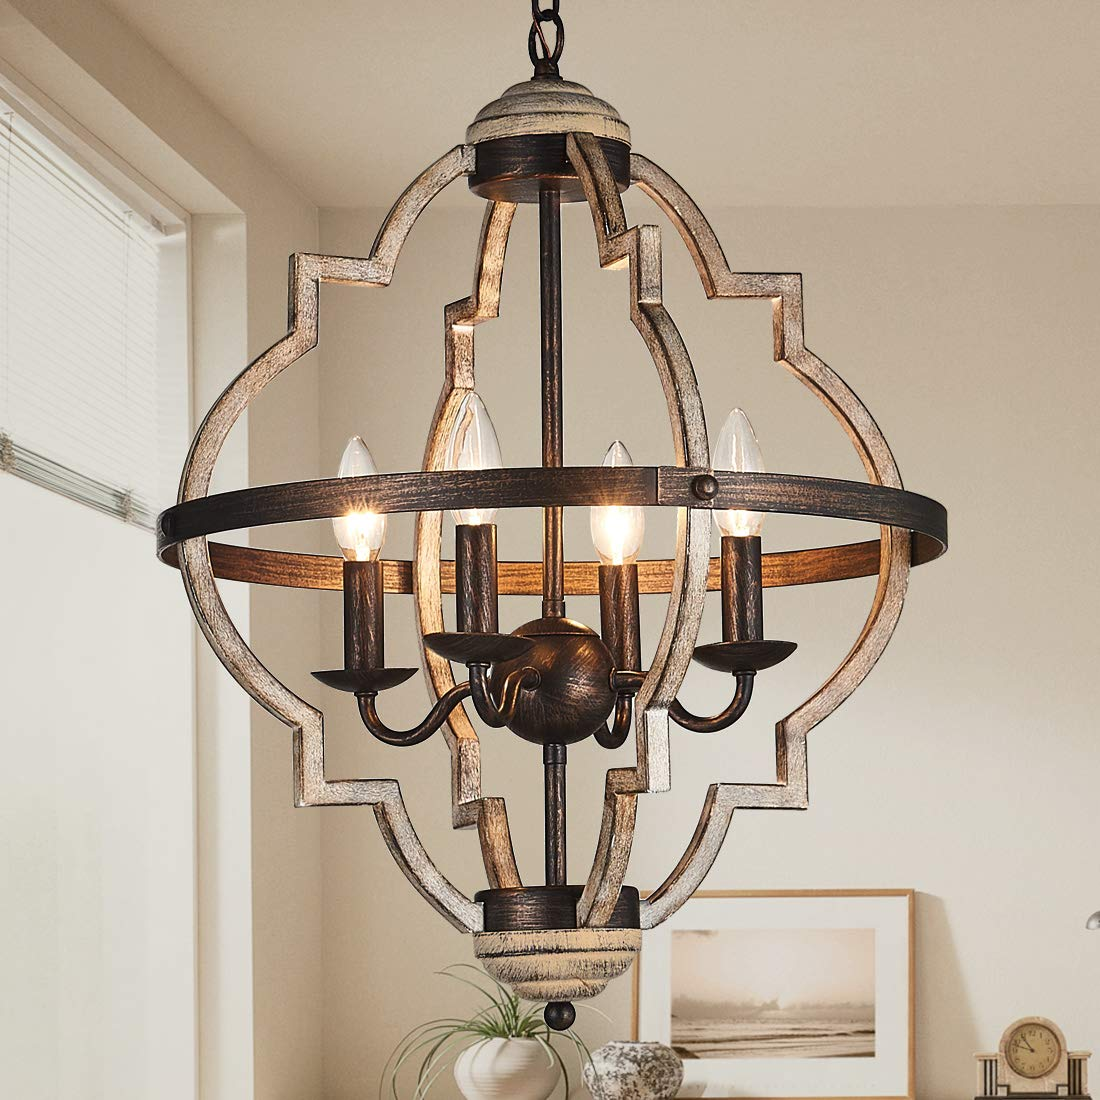 TZOE Orb 4-Light Metal Chandelier,Rustic Vintage Chandelier,Stardust Finish,Foyer Light,Adjustable Height,Dining Room Lighting Fixtures Hanging,Living Room Light,Kitchen Chandelier UL Listed